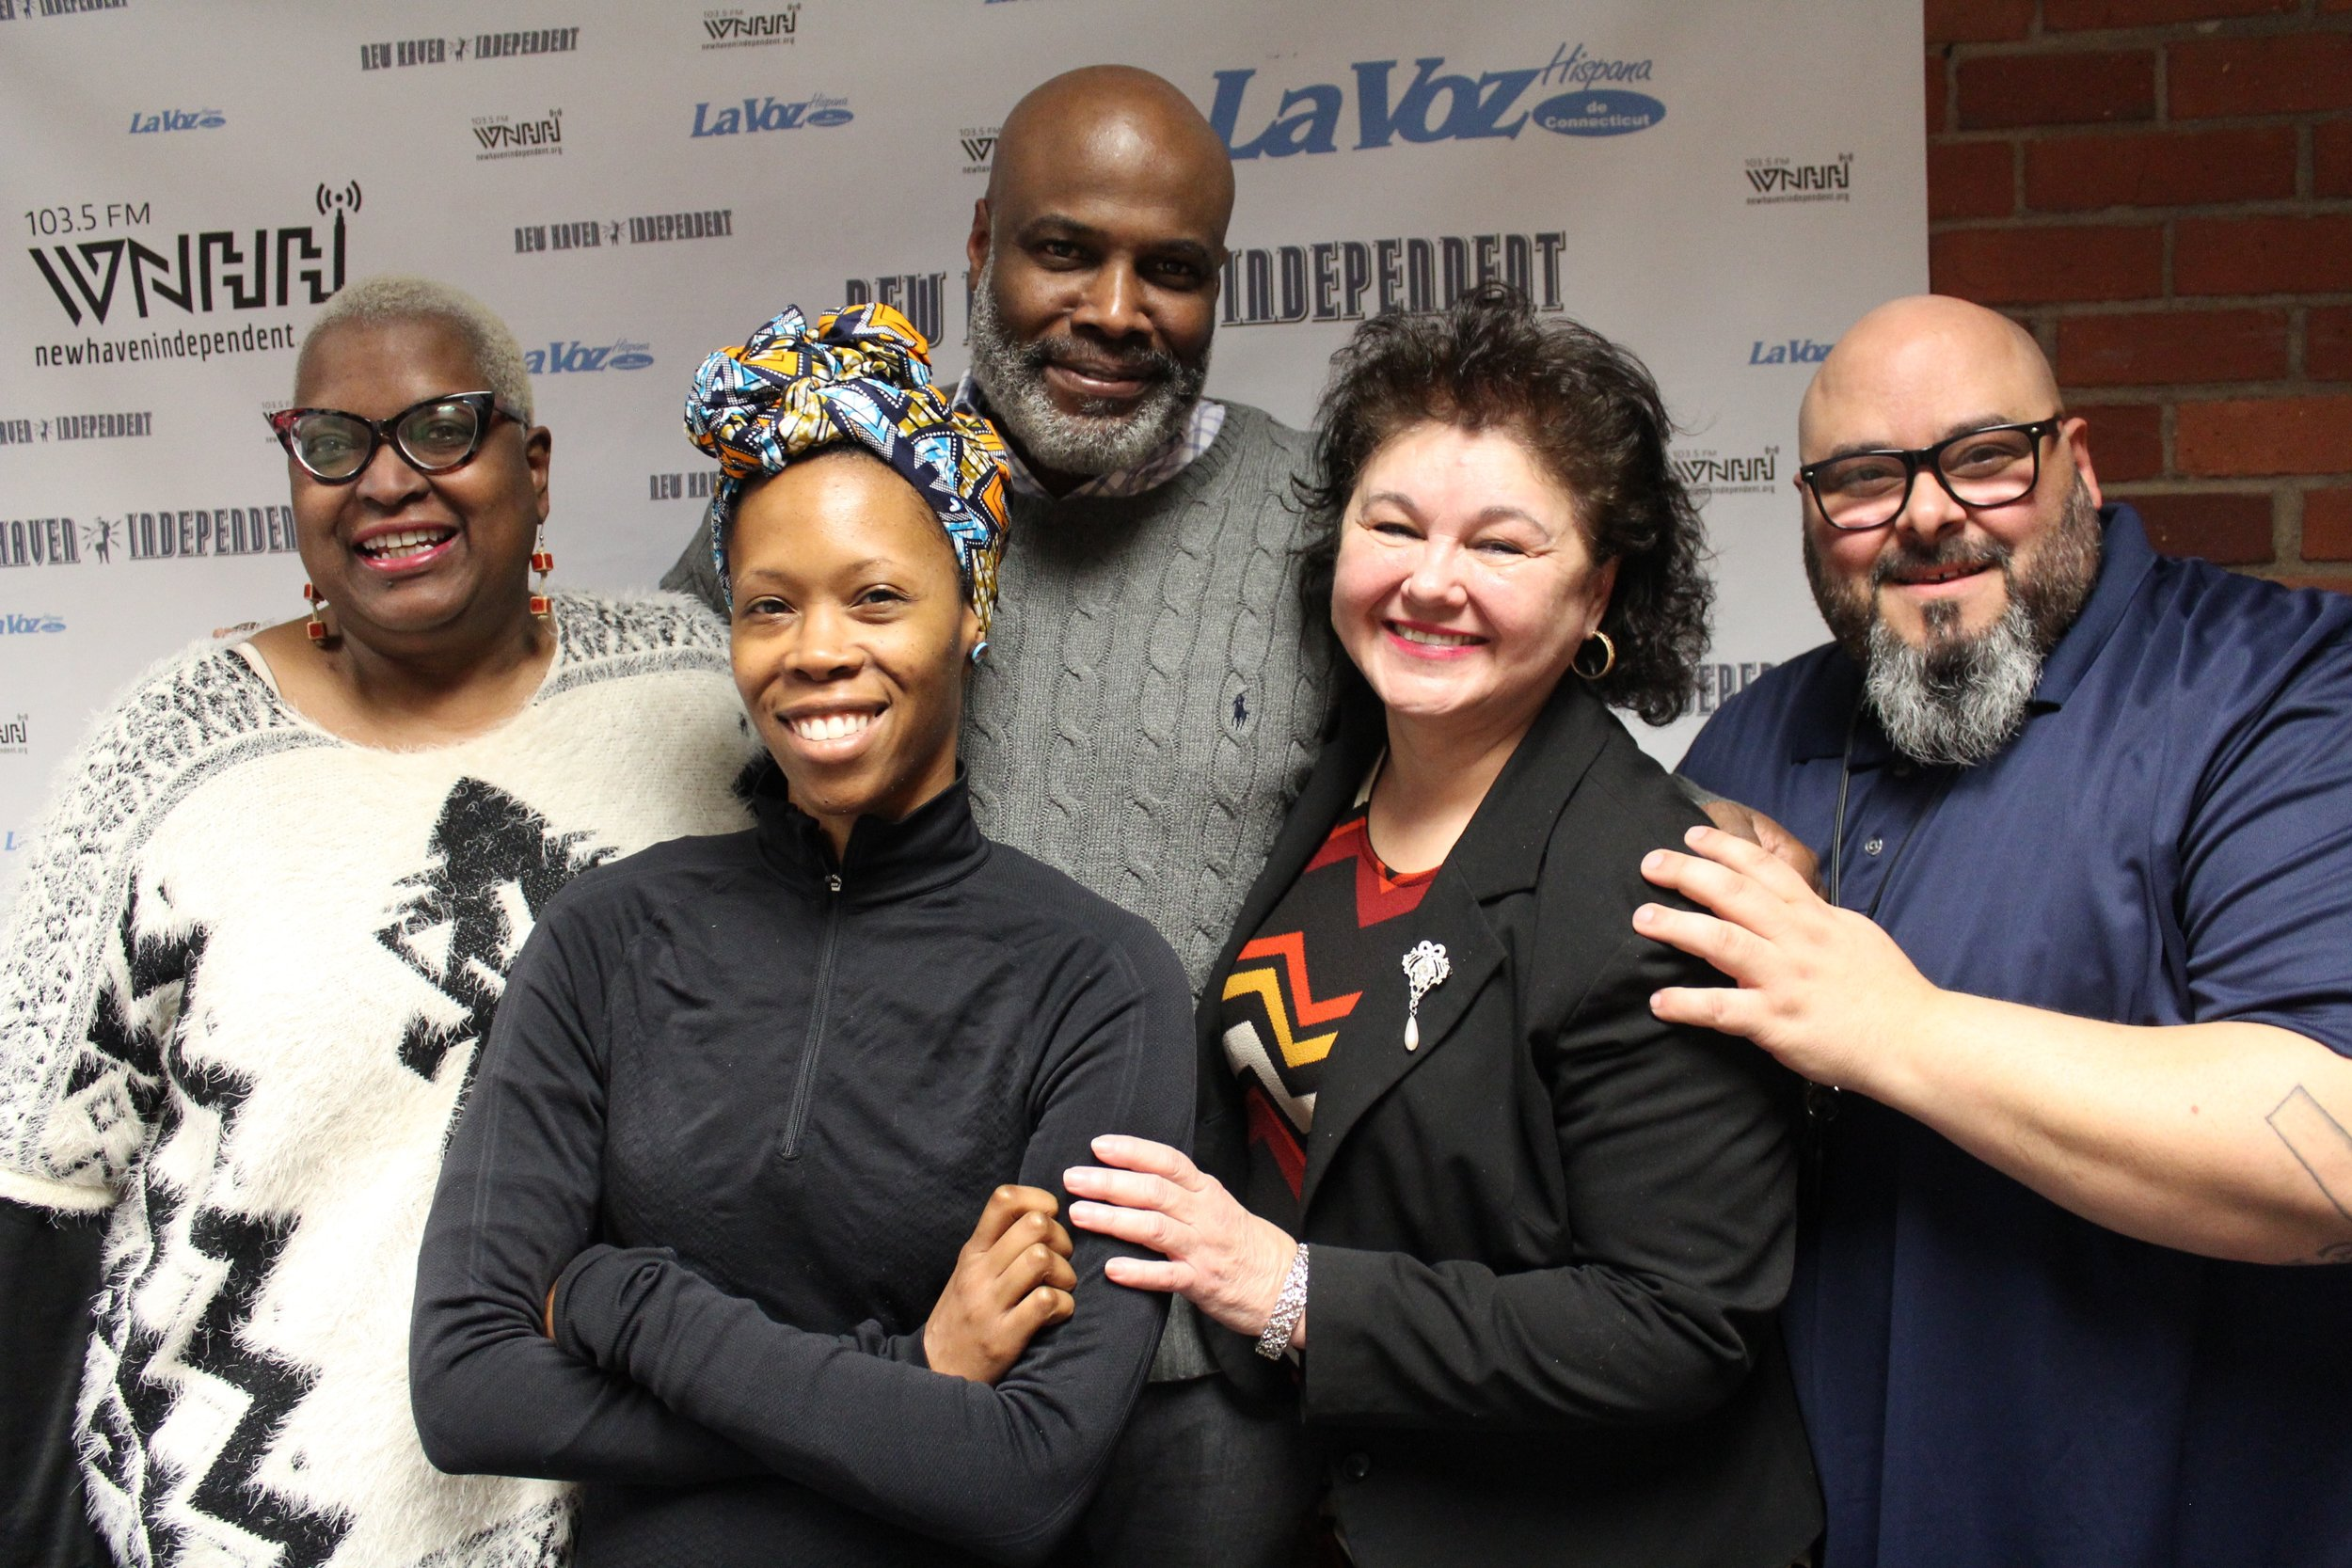 Babz Rawls-Ivy, Markeshia Ricks, Norma Rodriguez-Reyes, Joe Ugly and Harry Droz look behind the latest headlines about the city's police department.